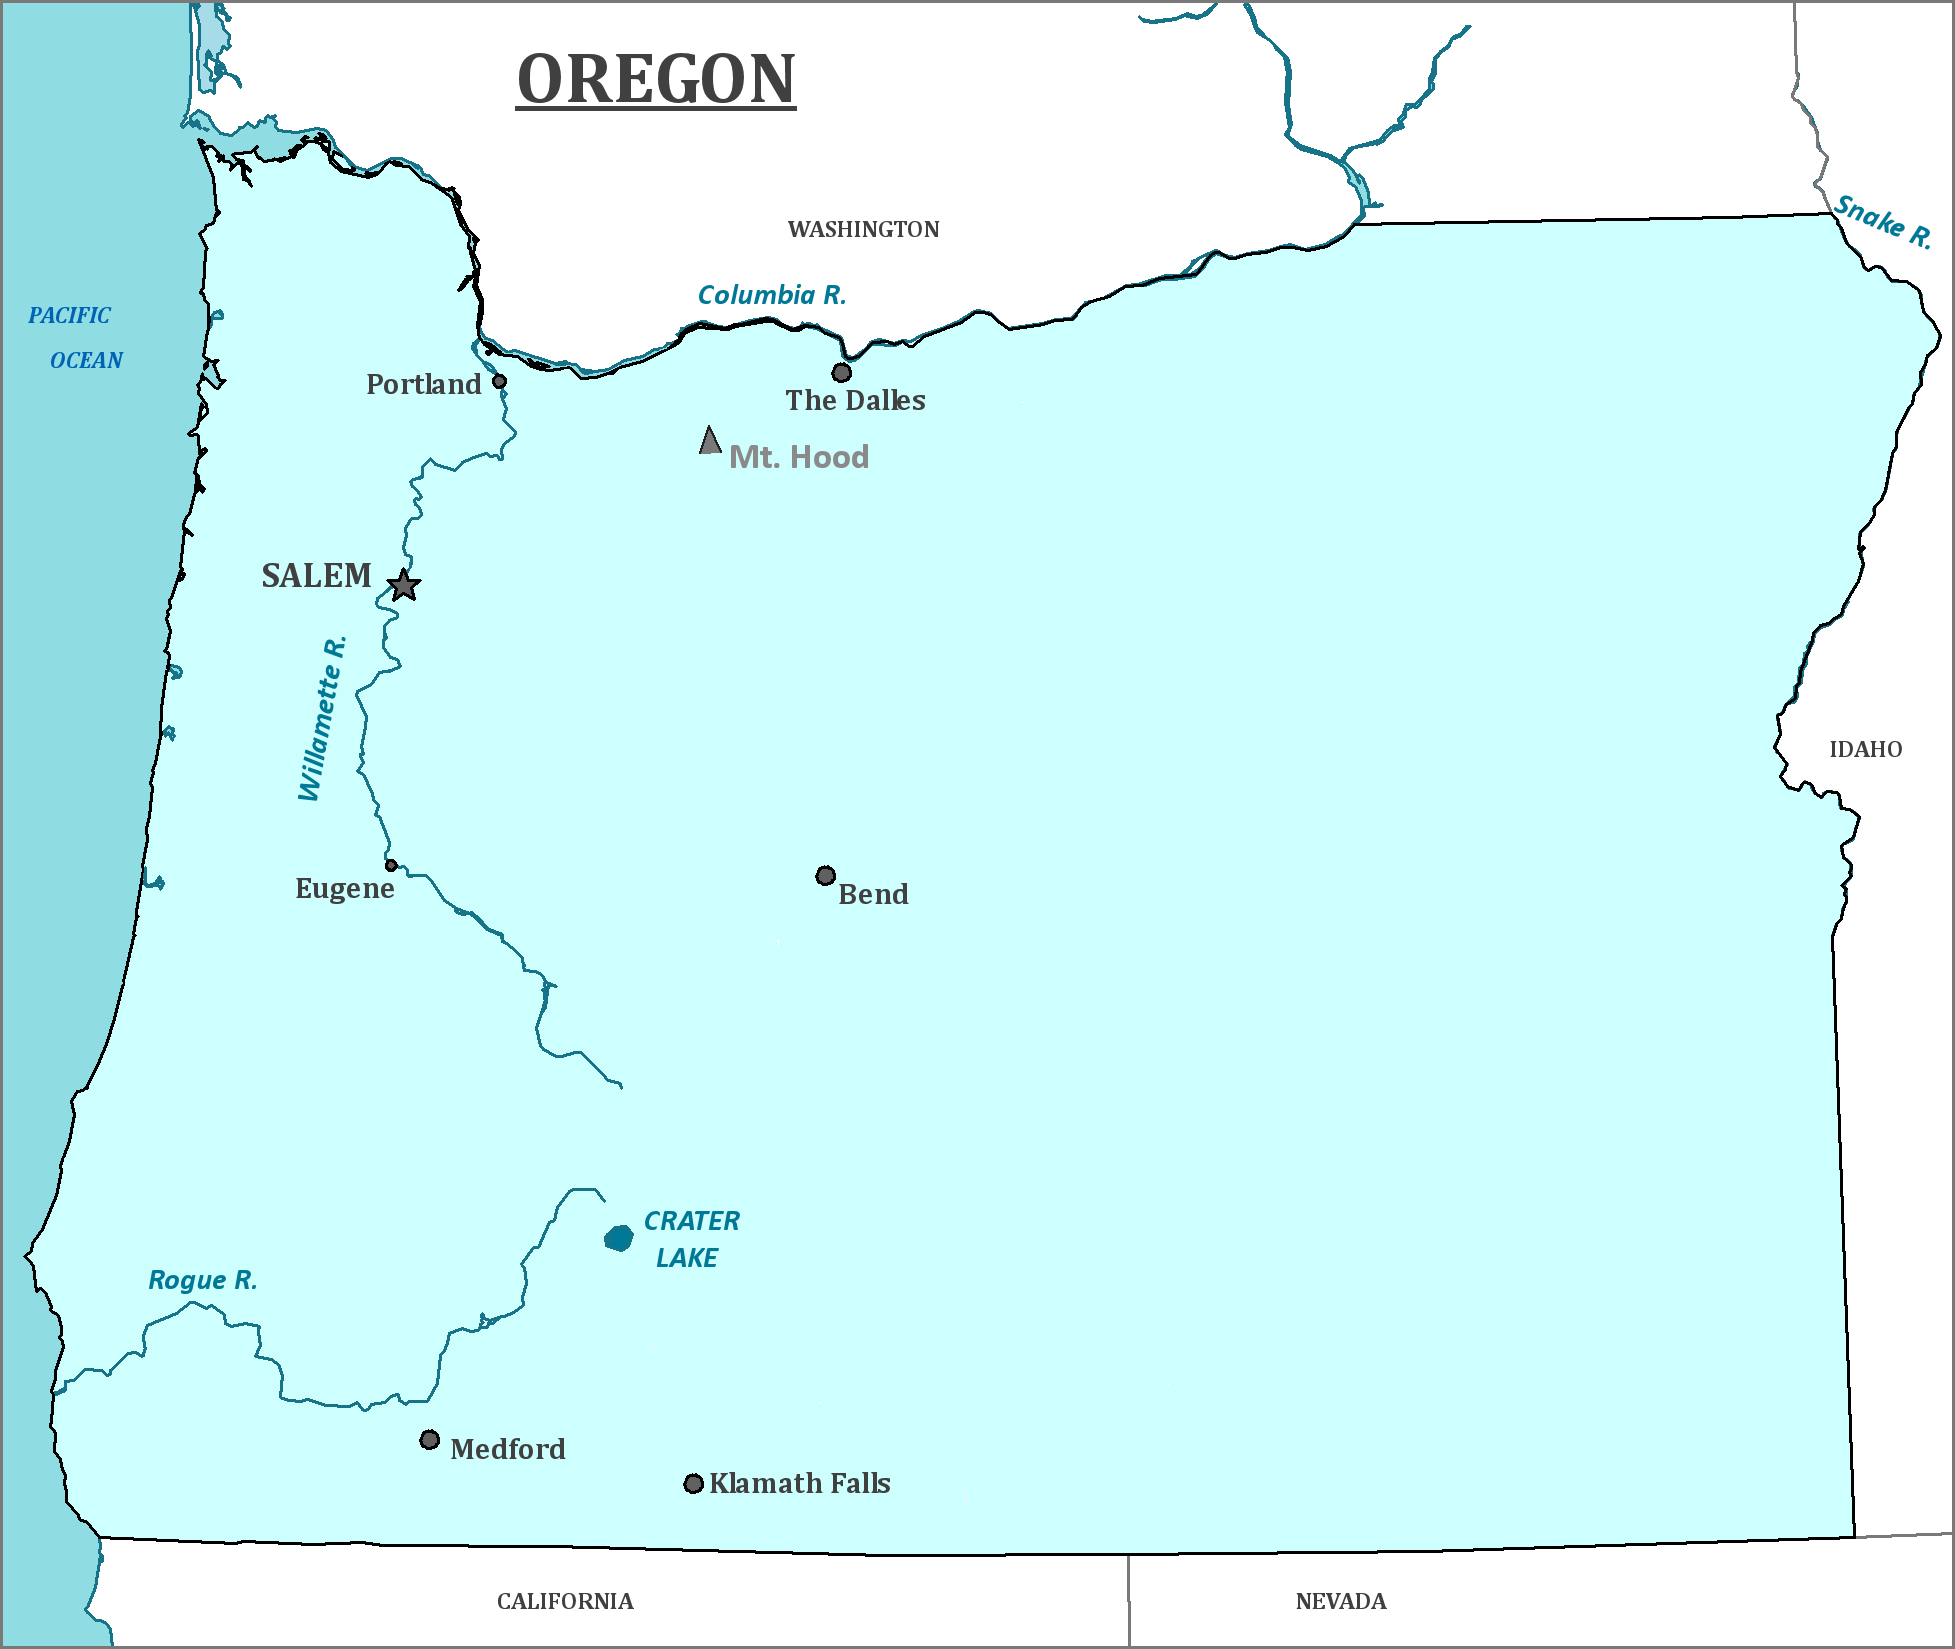 Oregon State Map - Map of Oregon and Information About the State on